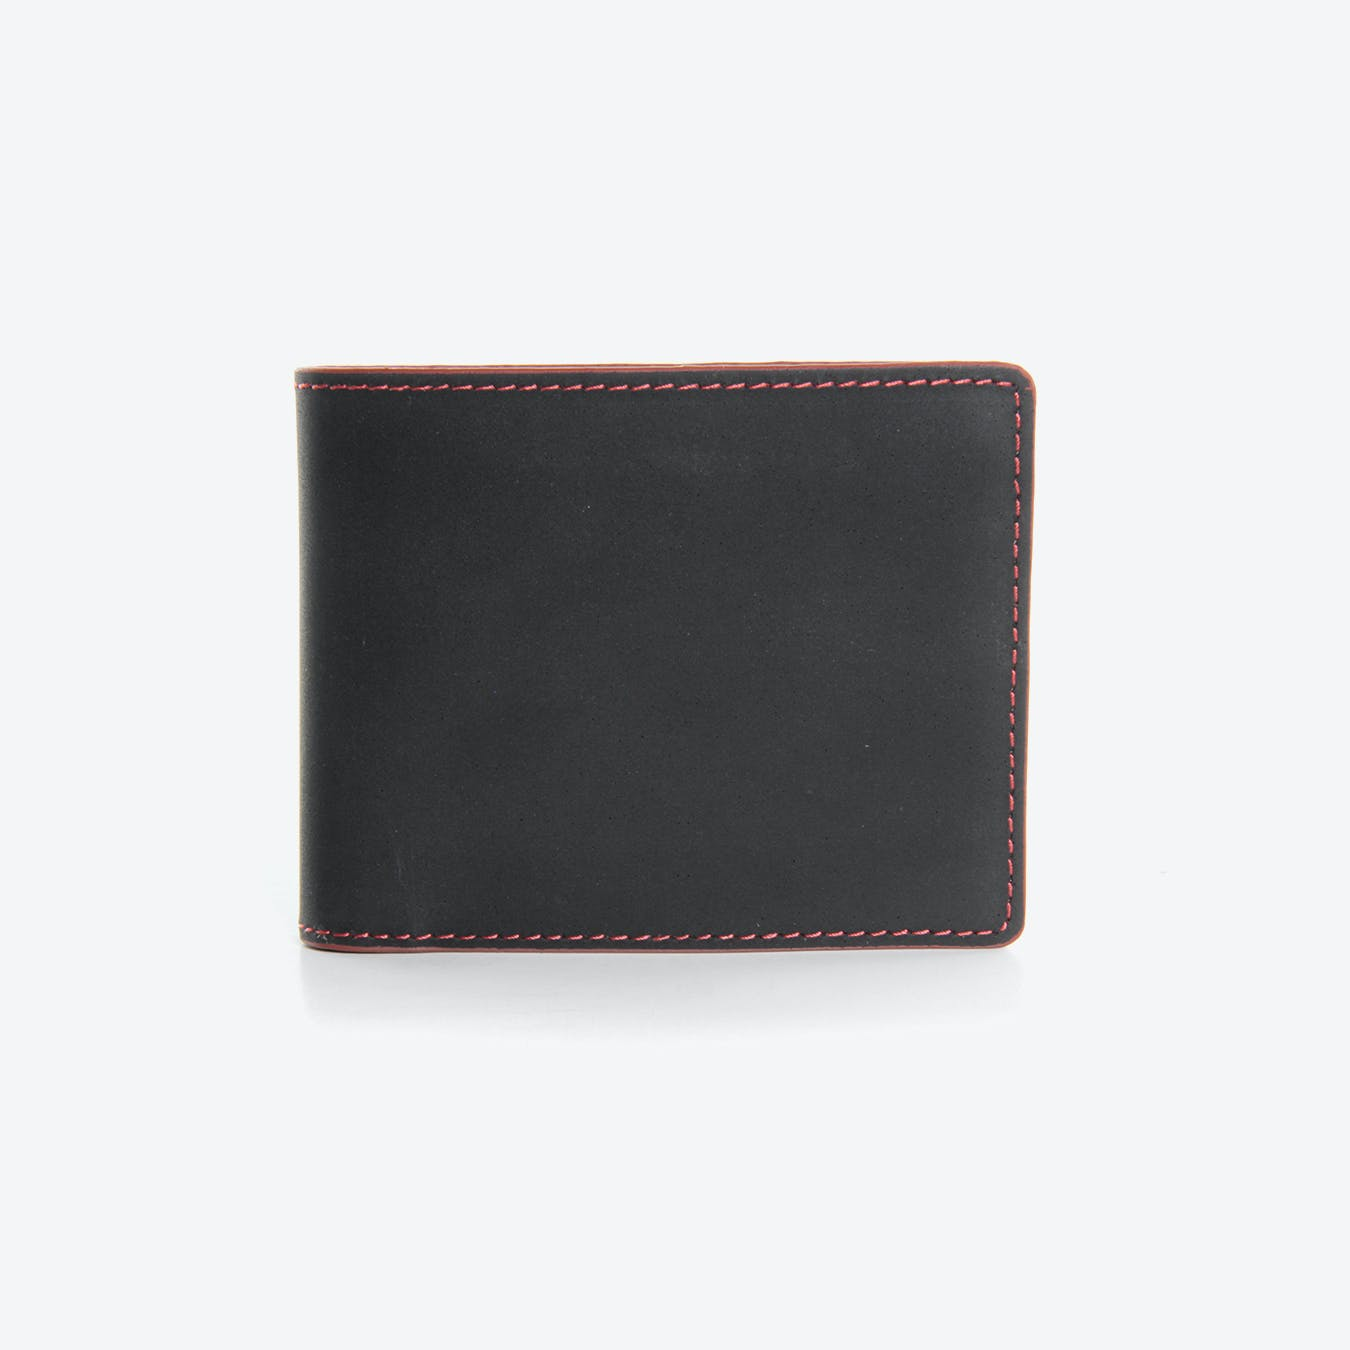 Print Room Wallet in Black Printing Blanket (with Coin Pocket)